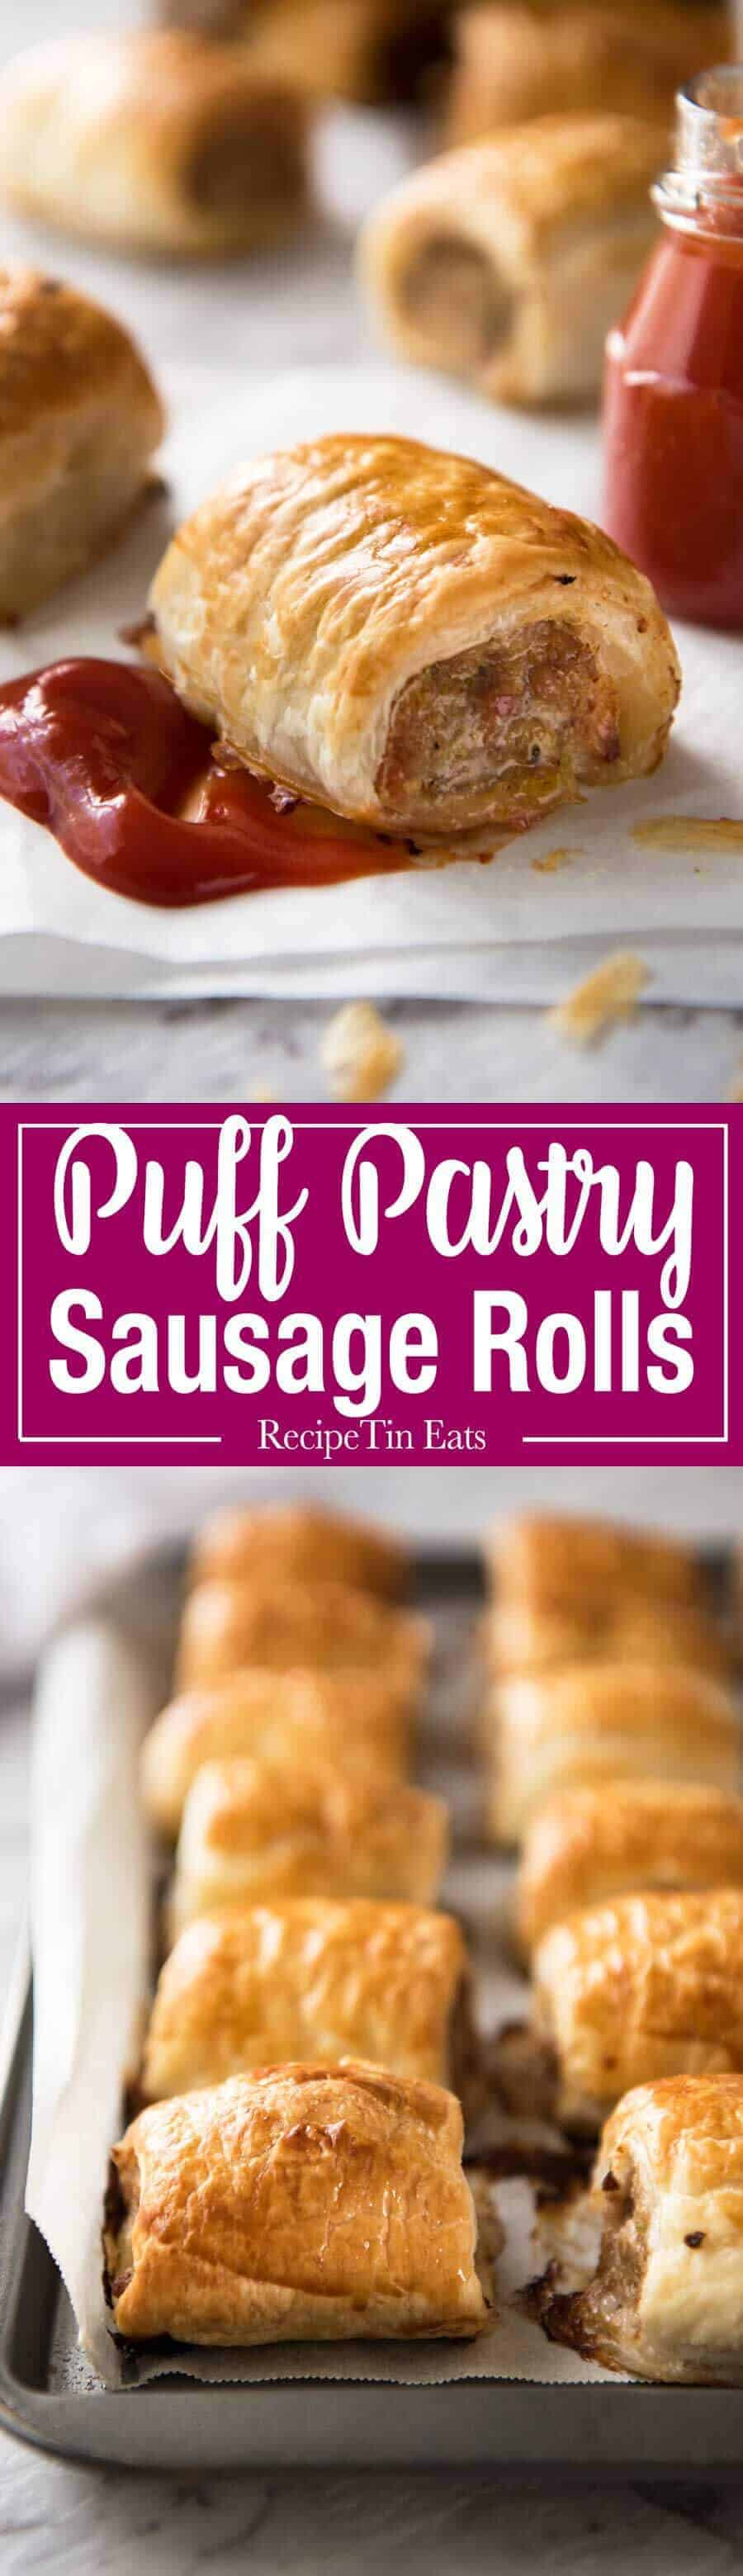 The famous Australian Sausage Rolls! As The New York Times said, they're like Pigs in Blankets, but BETTER!!! Easy to make, a homemade pork mince filling wrapped in puff pastry. recipetineats.com